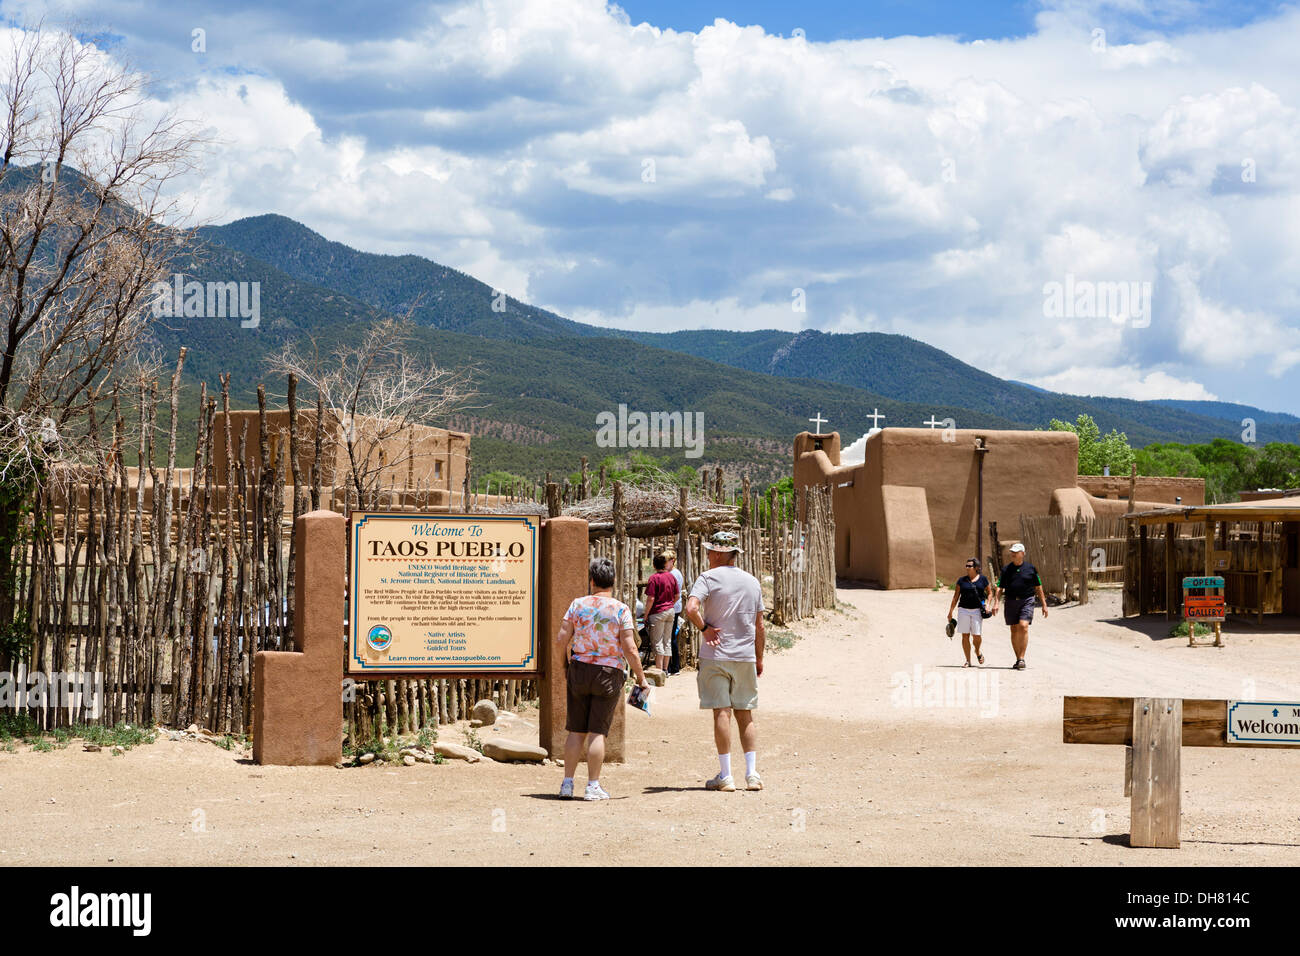 Tourists at the entrance to historic Taos Pueblo, Taos, New Mexico, USA - Stock Image